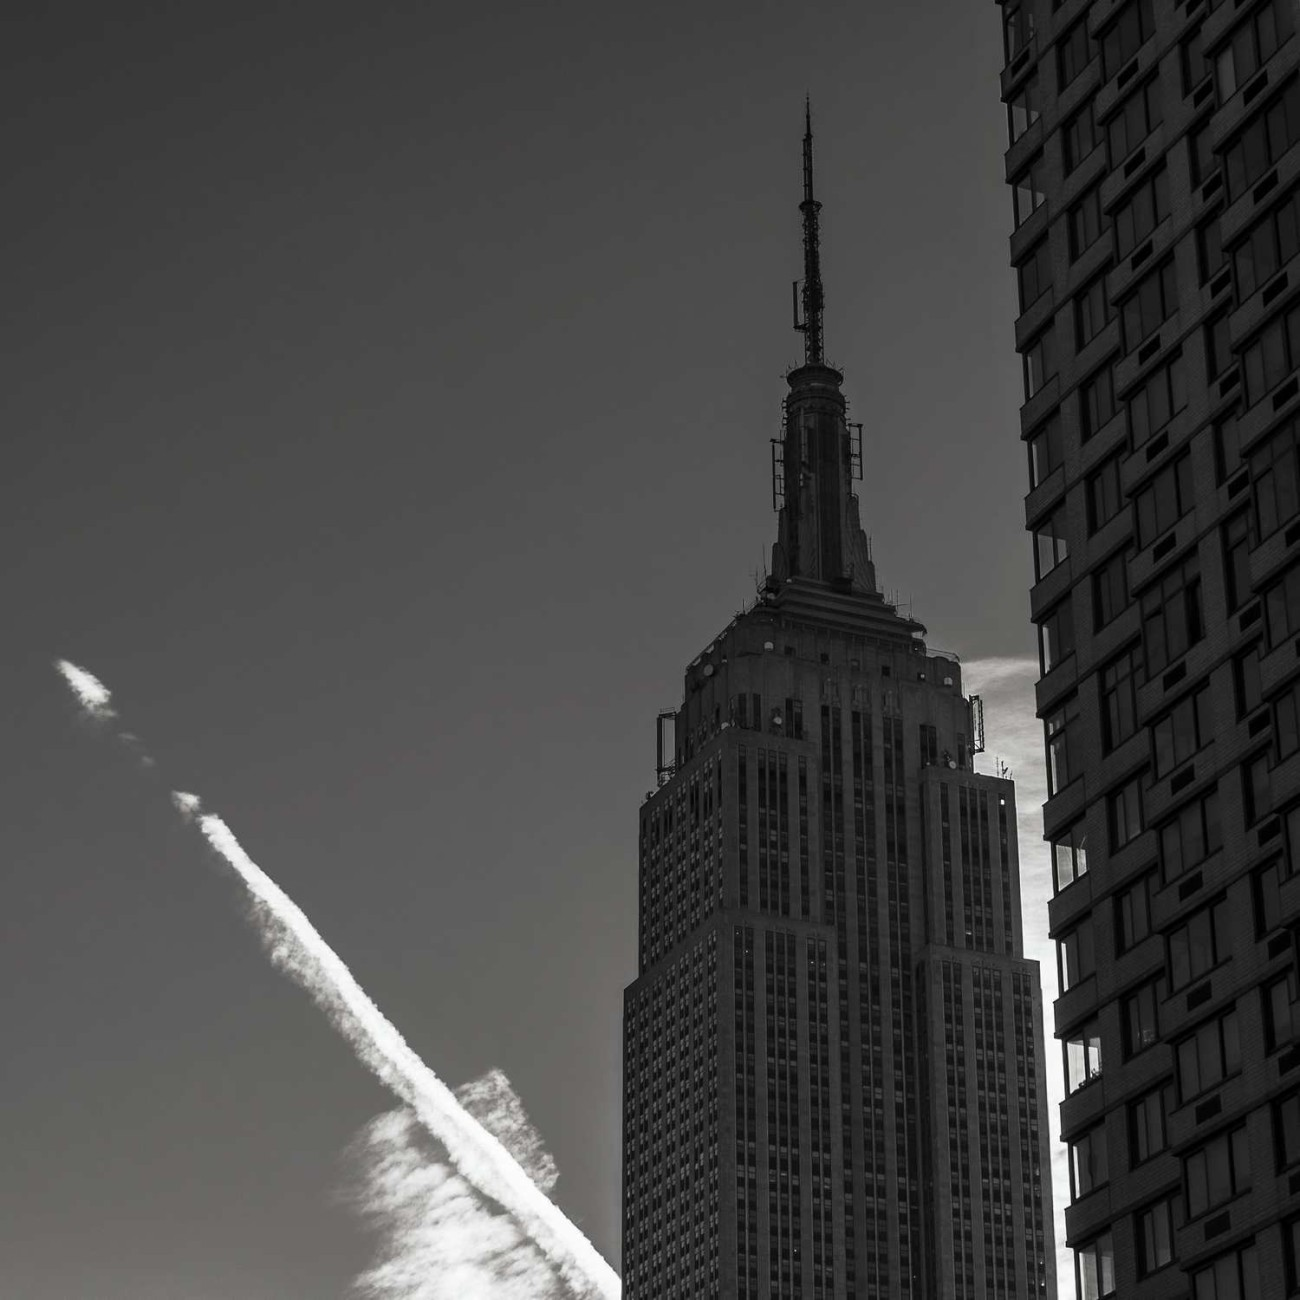 Empire State Building and contrail, New York, 2014